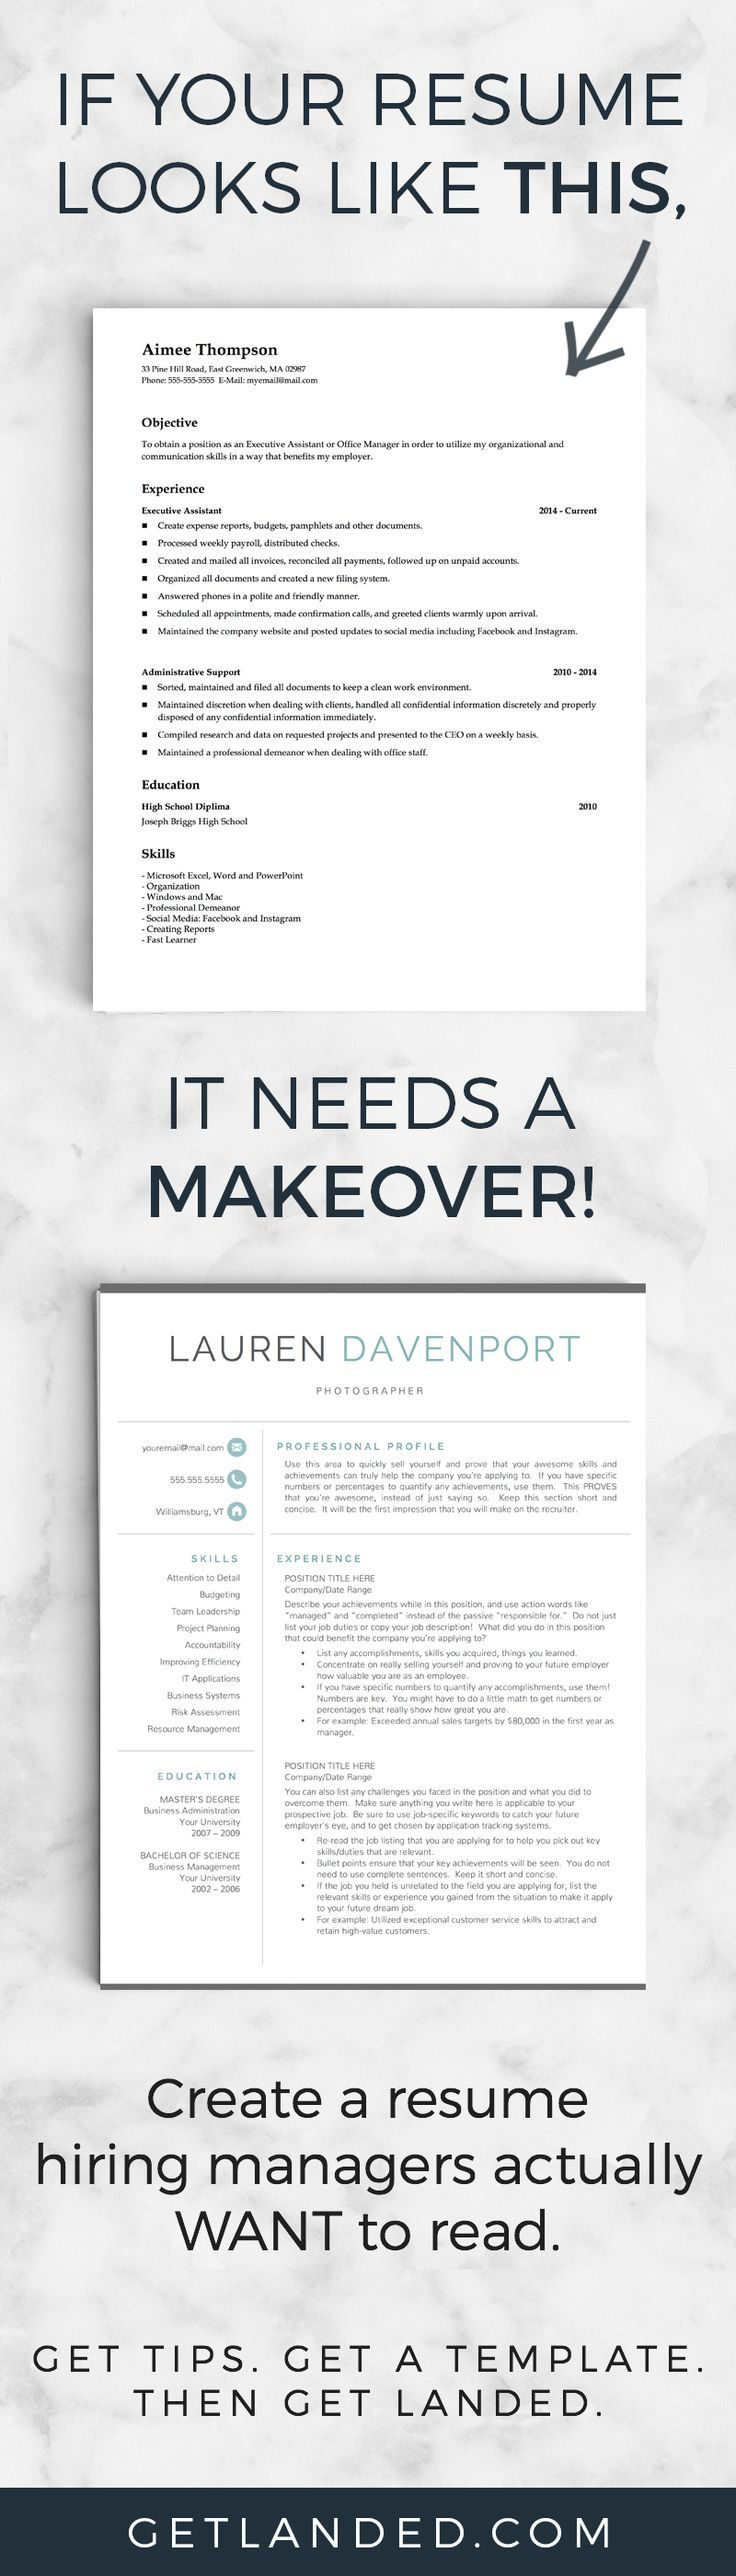 How To Get A Resume Template On Word 2010 80% Of Candidates Desperately Need A Resume Makeover Get A Resume